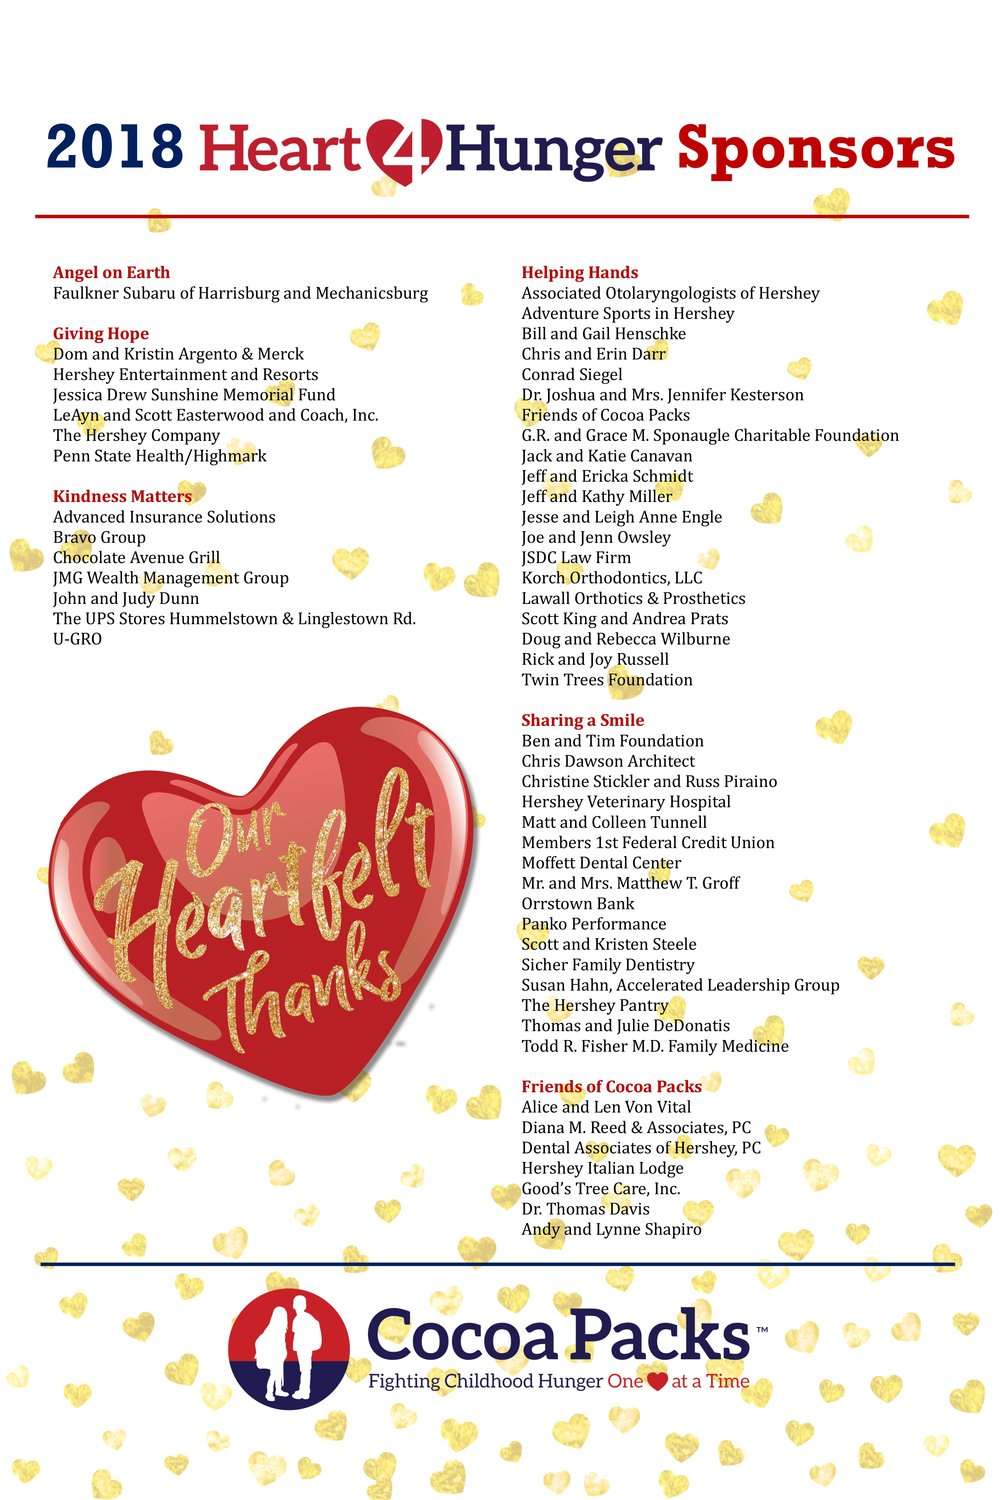 H4H 2019 - Sponsors Board with Large Heart.jpg